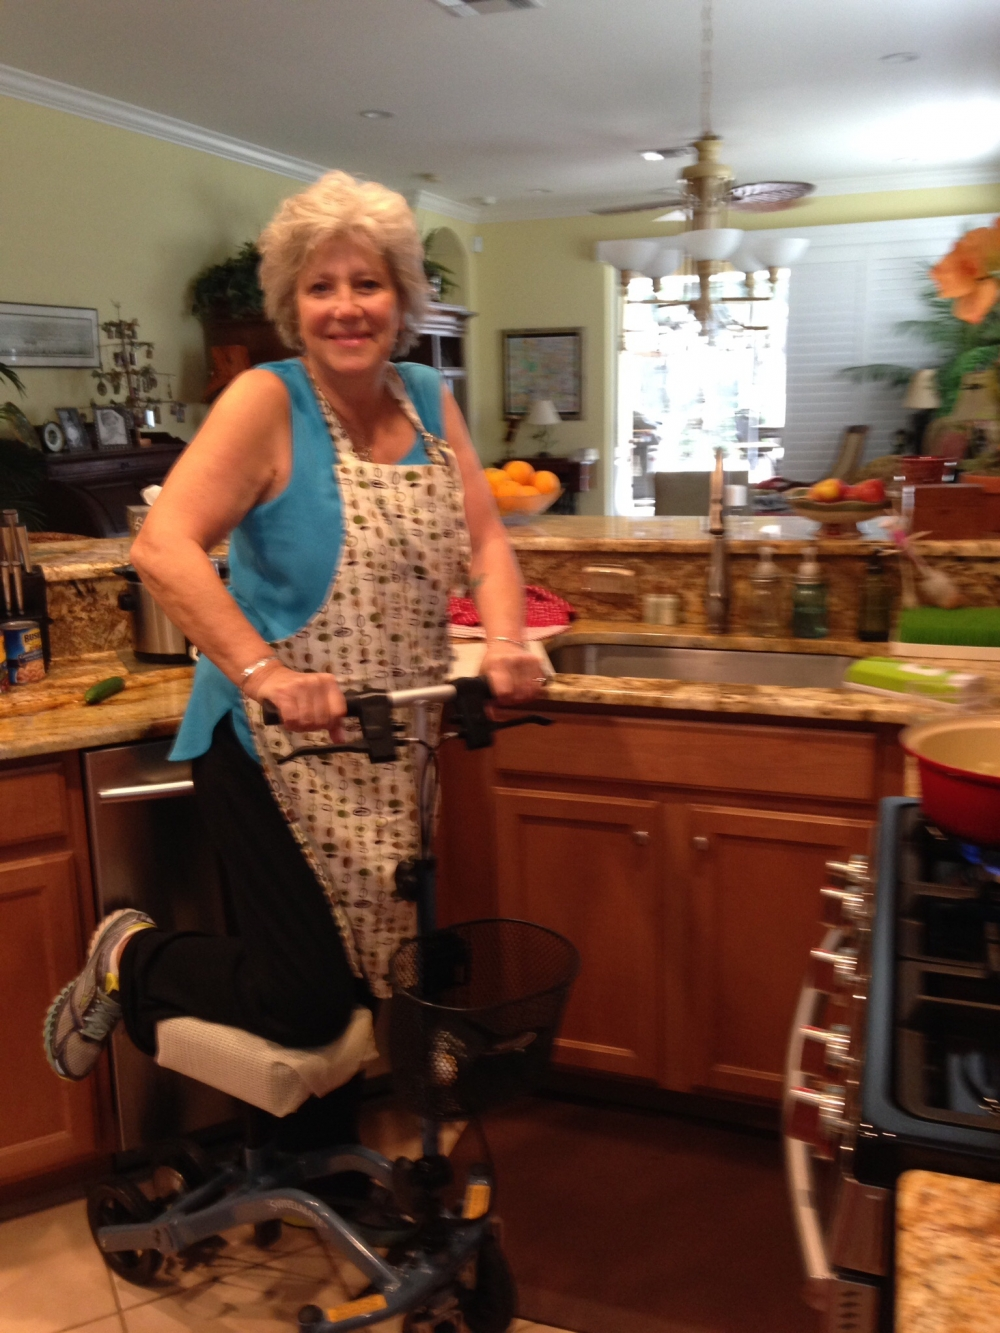 Kathy on the Swivelmate Knee Walker from Naples Florida March 2015